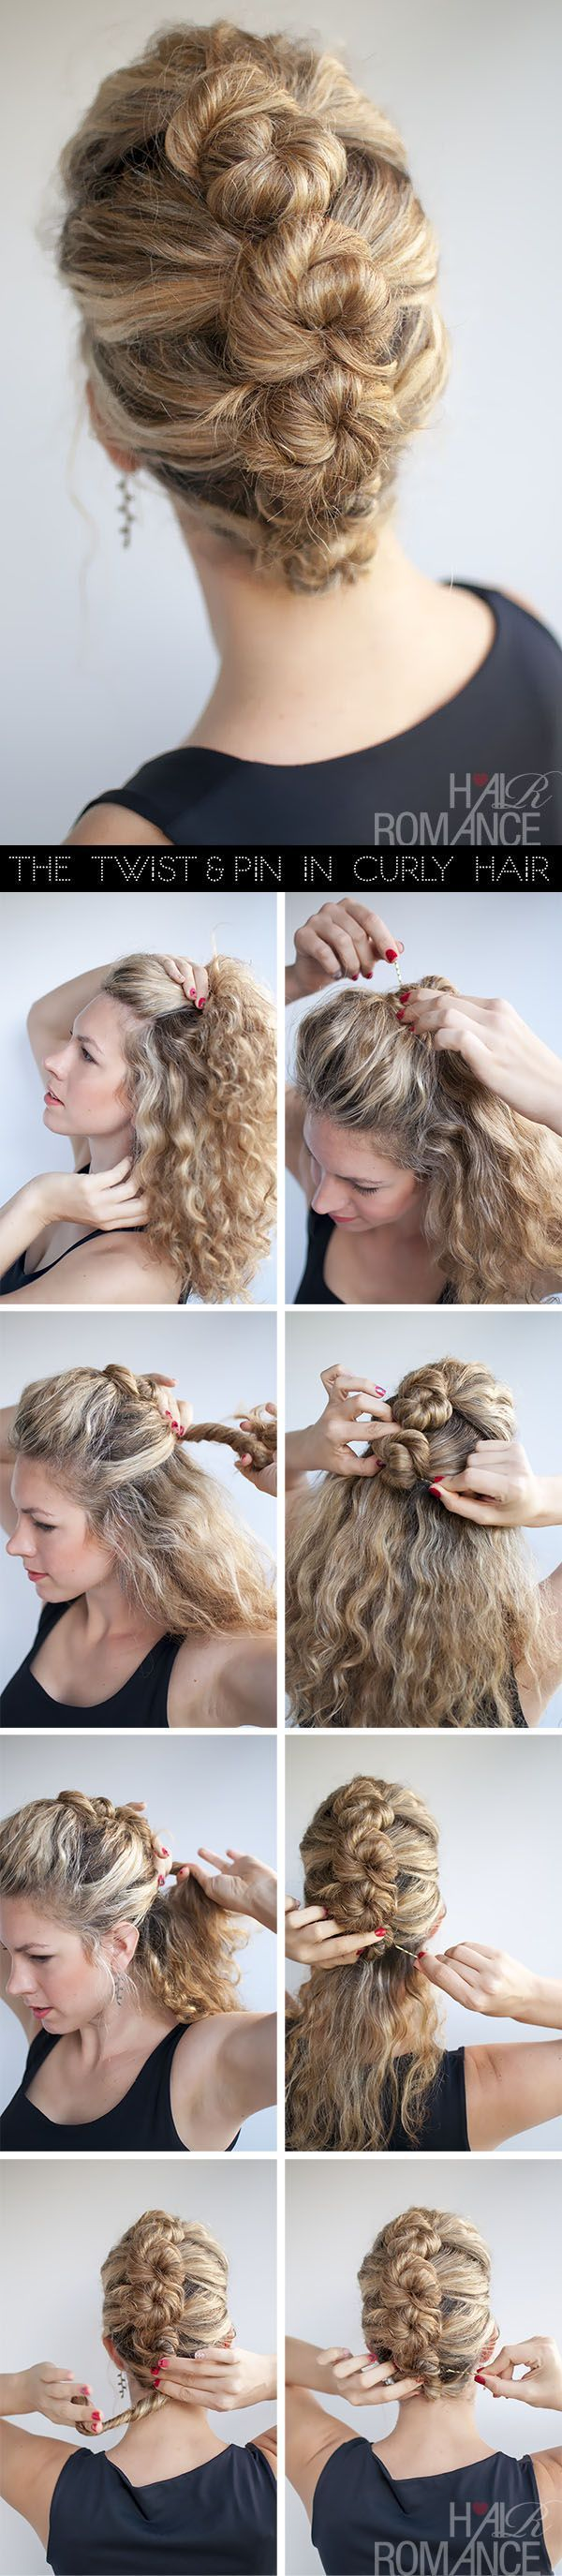 Miraculous 1000 Ideas About Easy Curly Hairstyles On Pinterest Hair Tricks Short Hairstyles For Black Women Fulllsitofus